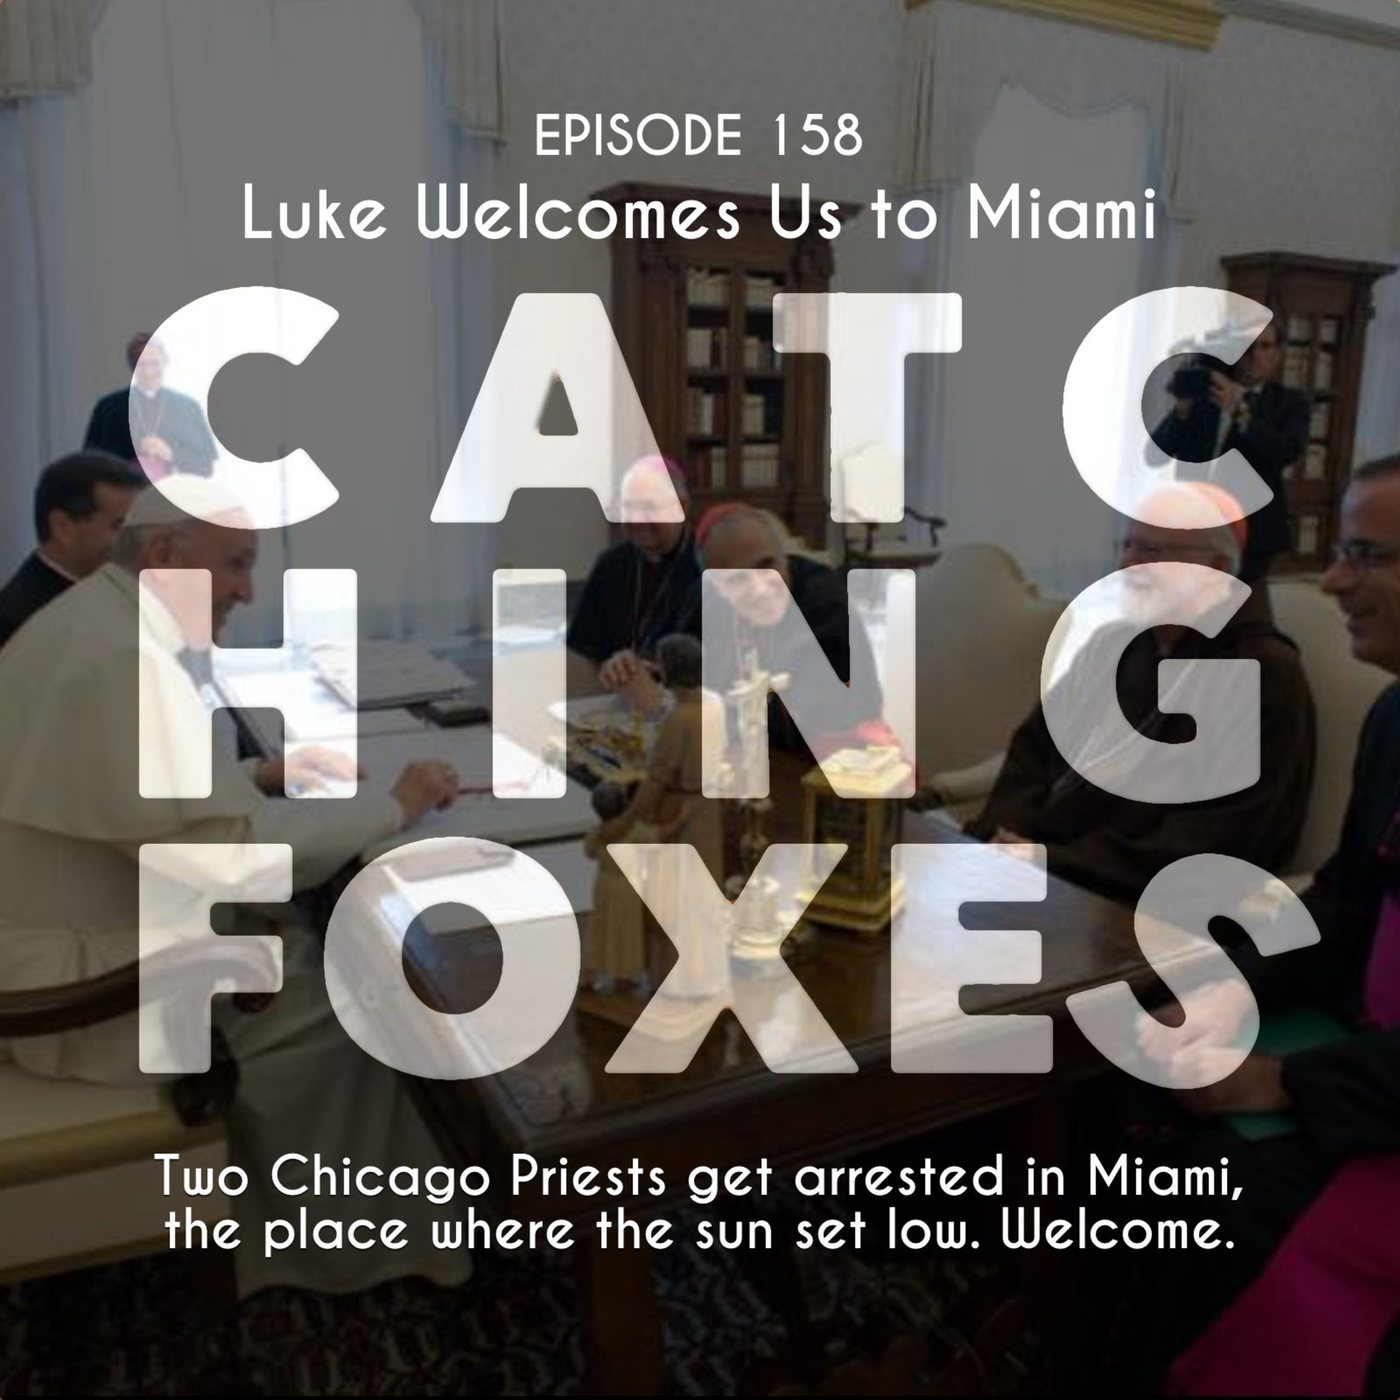 Catching Foxes: Luke welcomes us to Miami